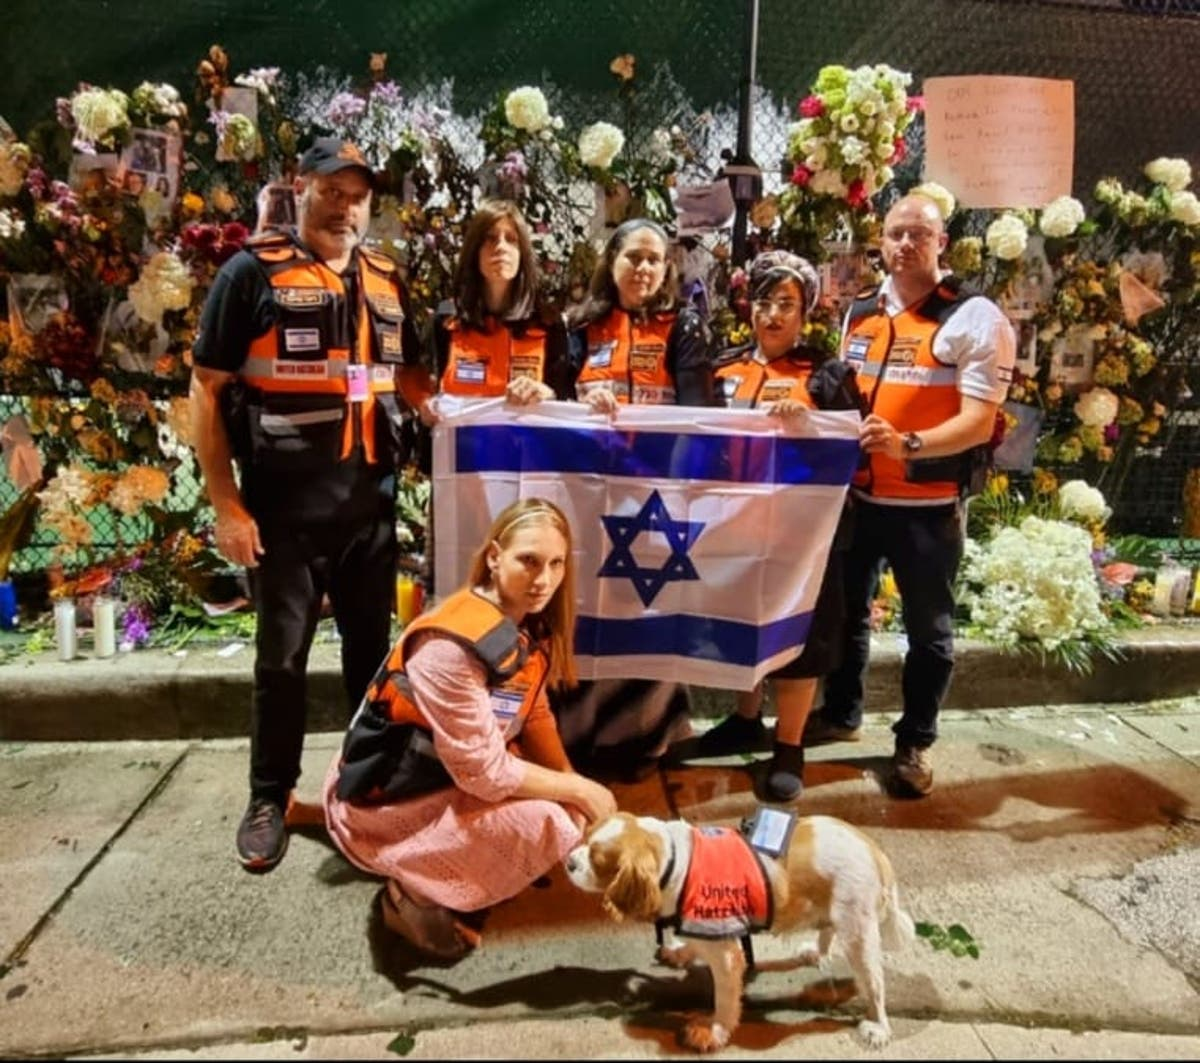 Therapy dogs for first responders and teams flown in from Israel: Inside the Miami condo recovery operation